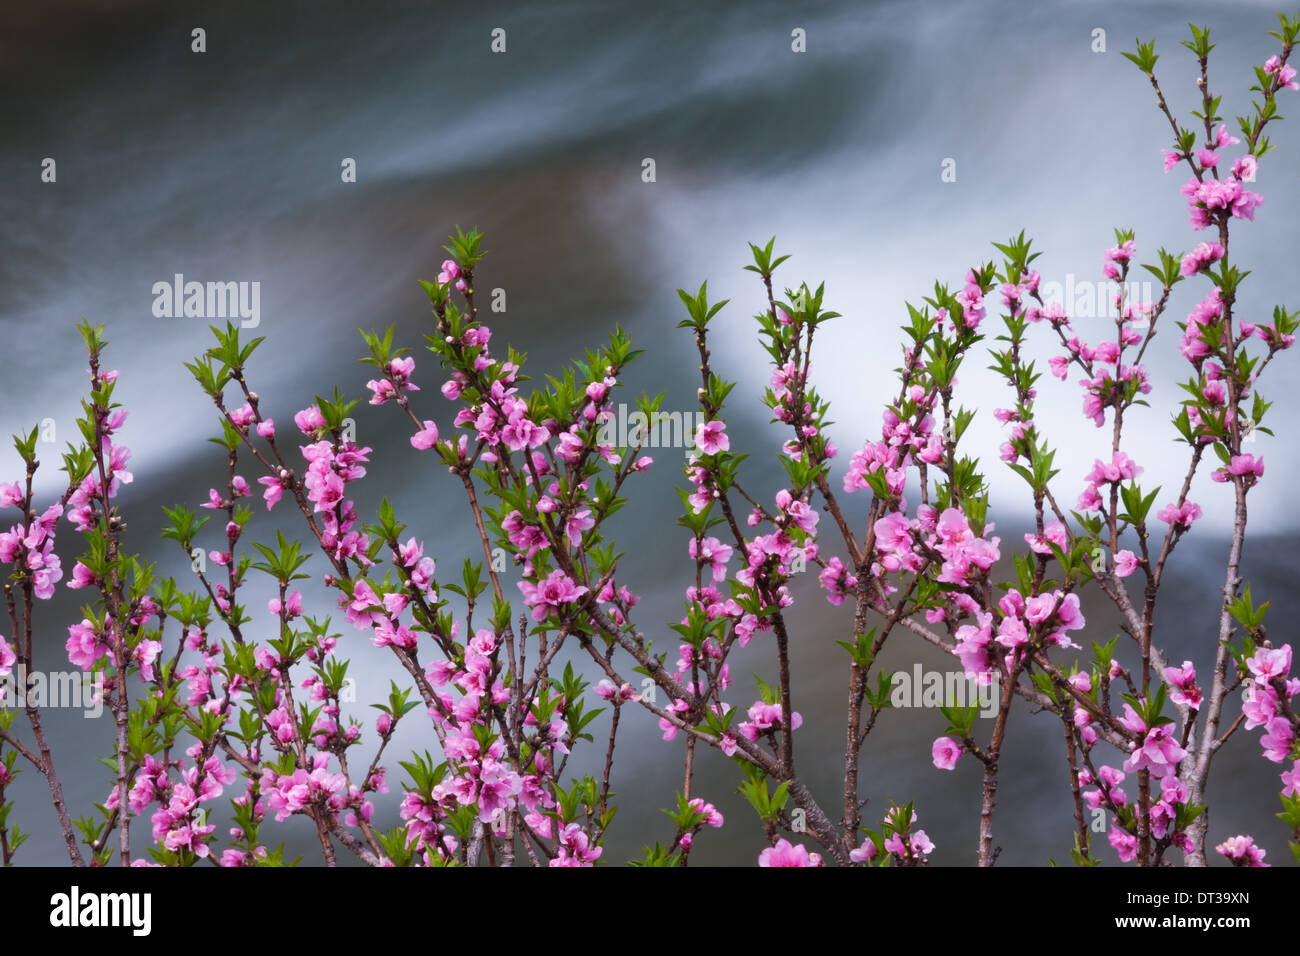 Springtime pink blossoms on a shrub in Bhutan - Stock Image